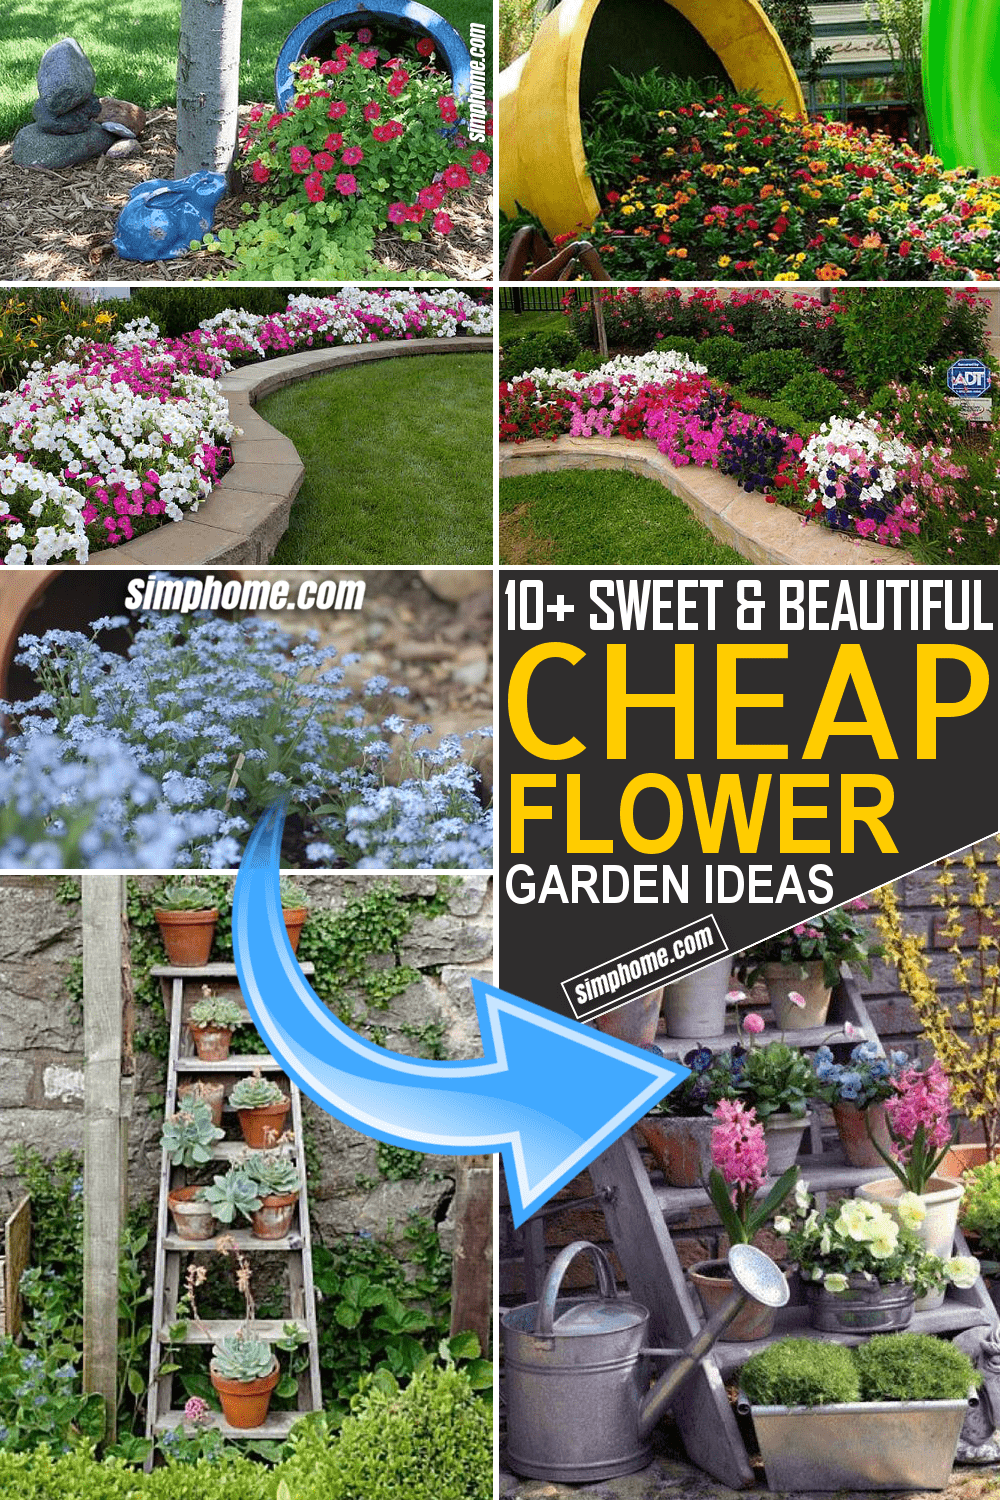 Simphome.com 10 Cheap Flower Garden Ideas Featured Image